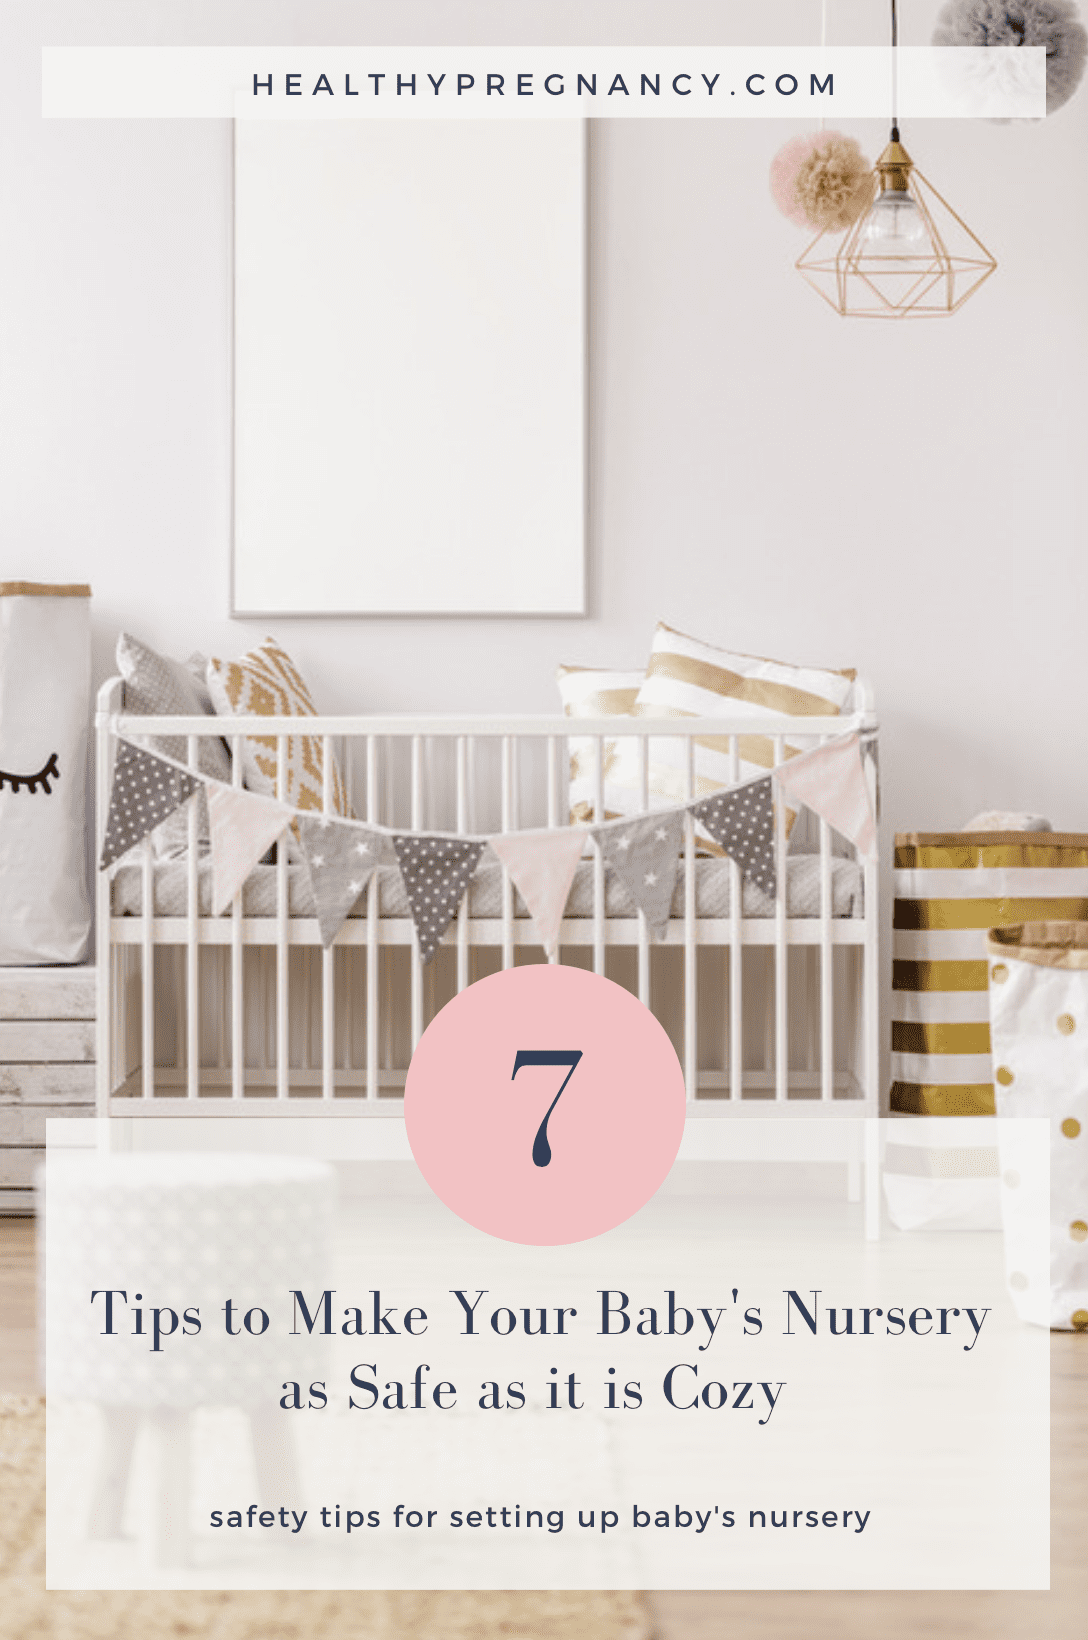 7 Tips to Make Your Baby's Nursery as Safe as it is Cozy.